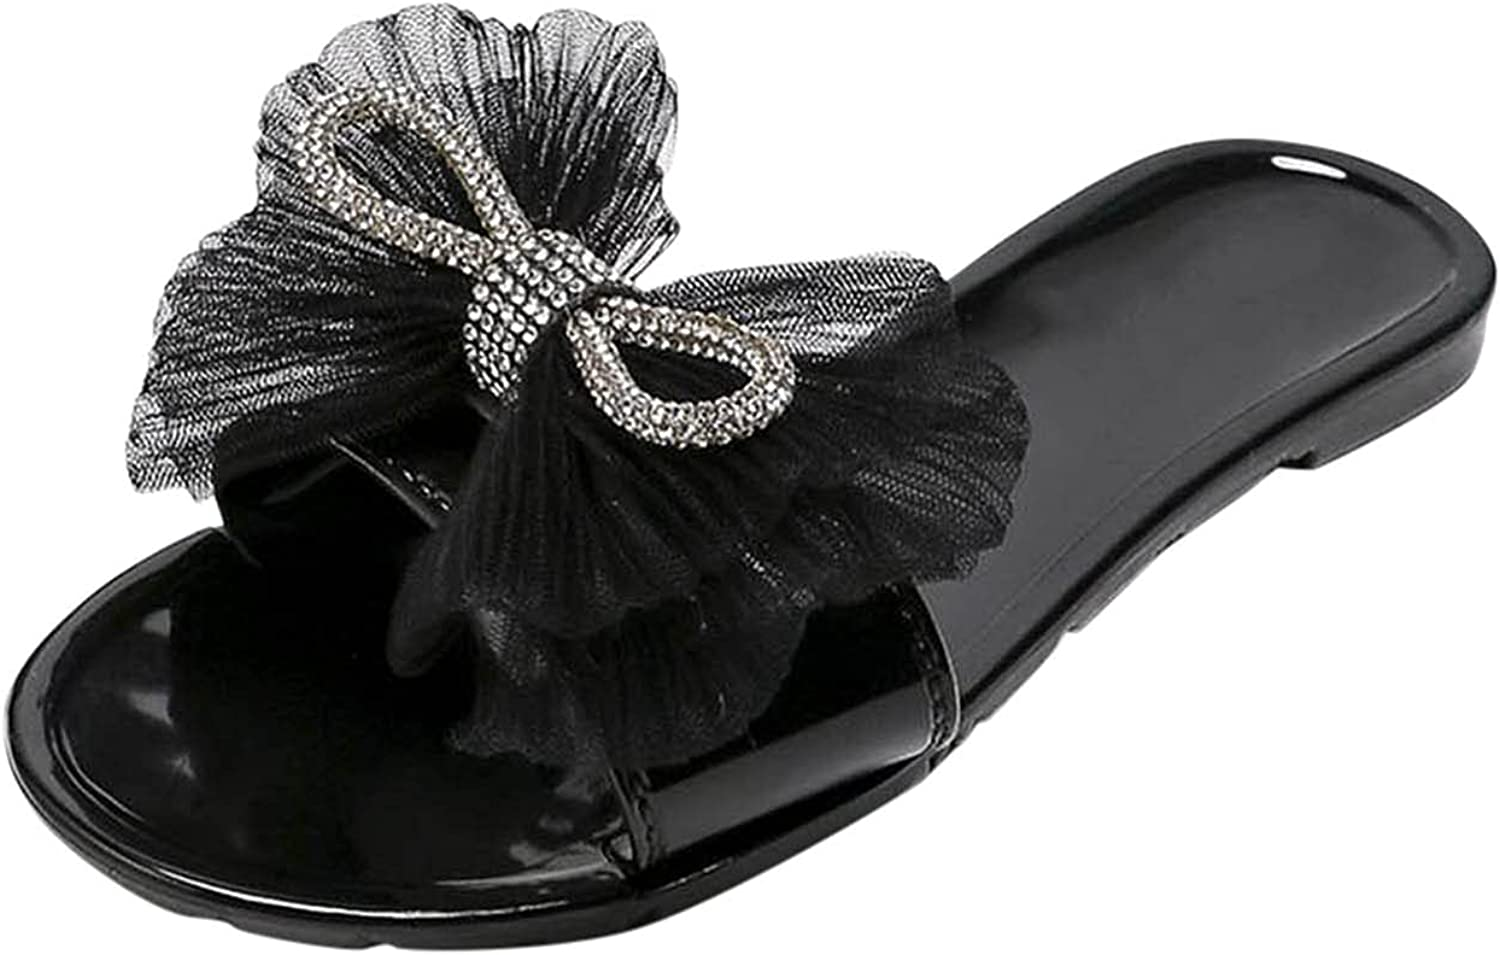 Fashion Women's Casual Shoes Breathable Rhinestone Bow Slippers Open-toed Flip-flops Rubber Flat Non-slip Slippers Beach Outdoor Casual Sandals